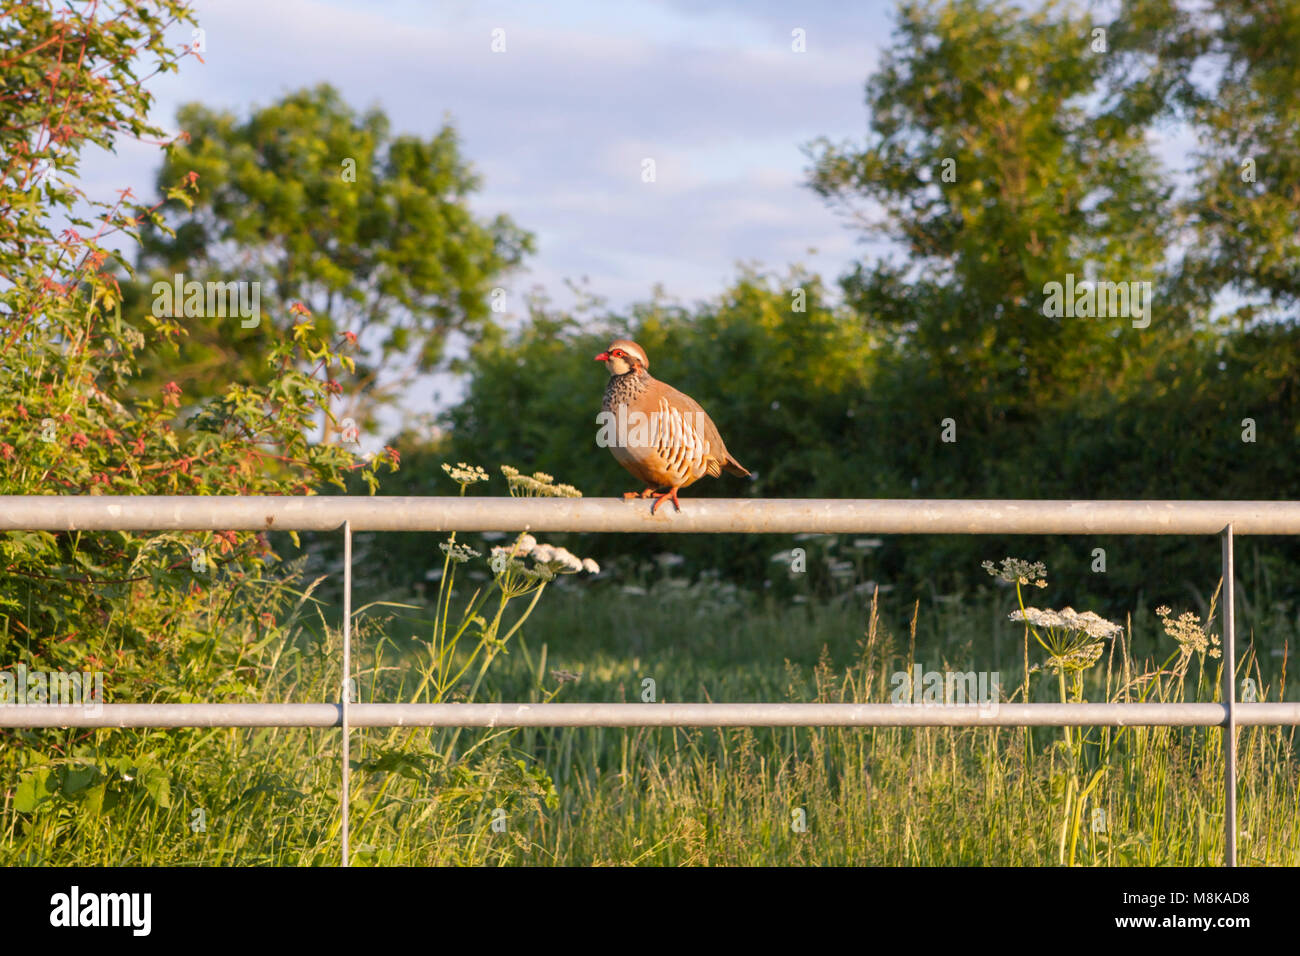 Partridge (Alectoris rufa)  , a small gamebird perched on a metal farm gate, side view. Melton Mowbray Leicestershire - Stock Image